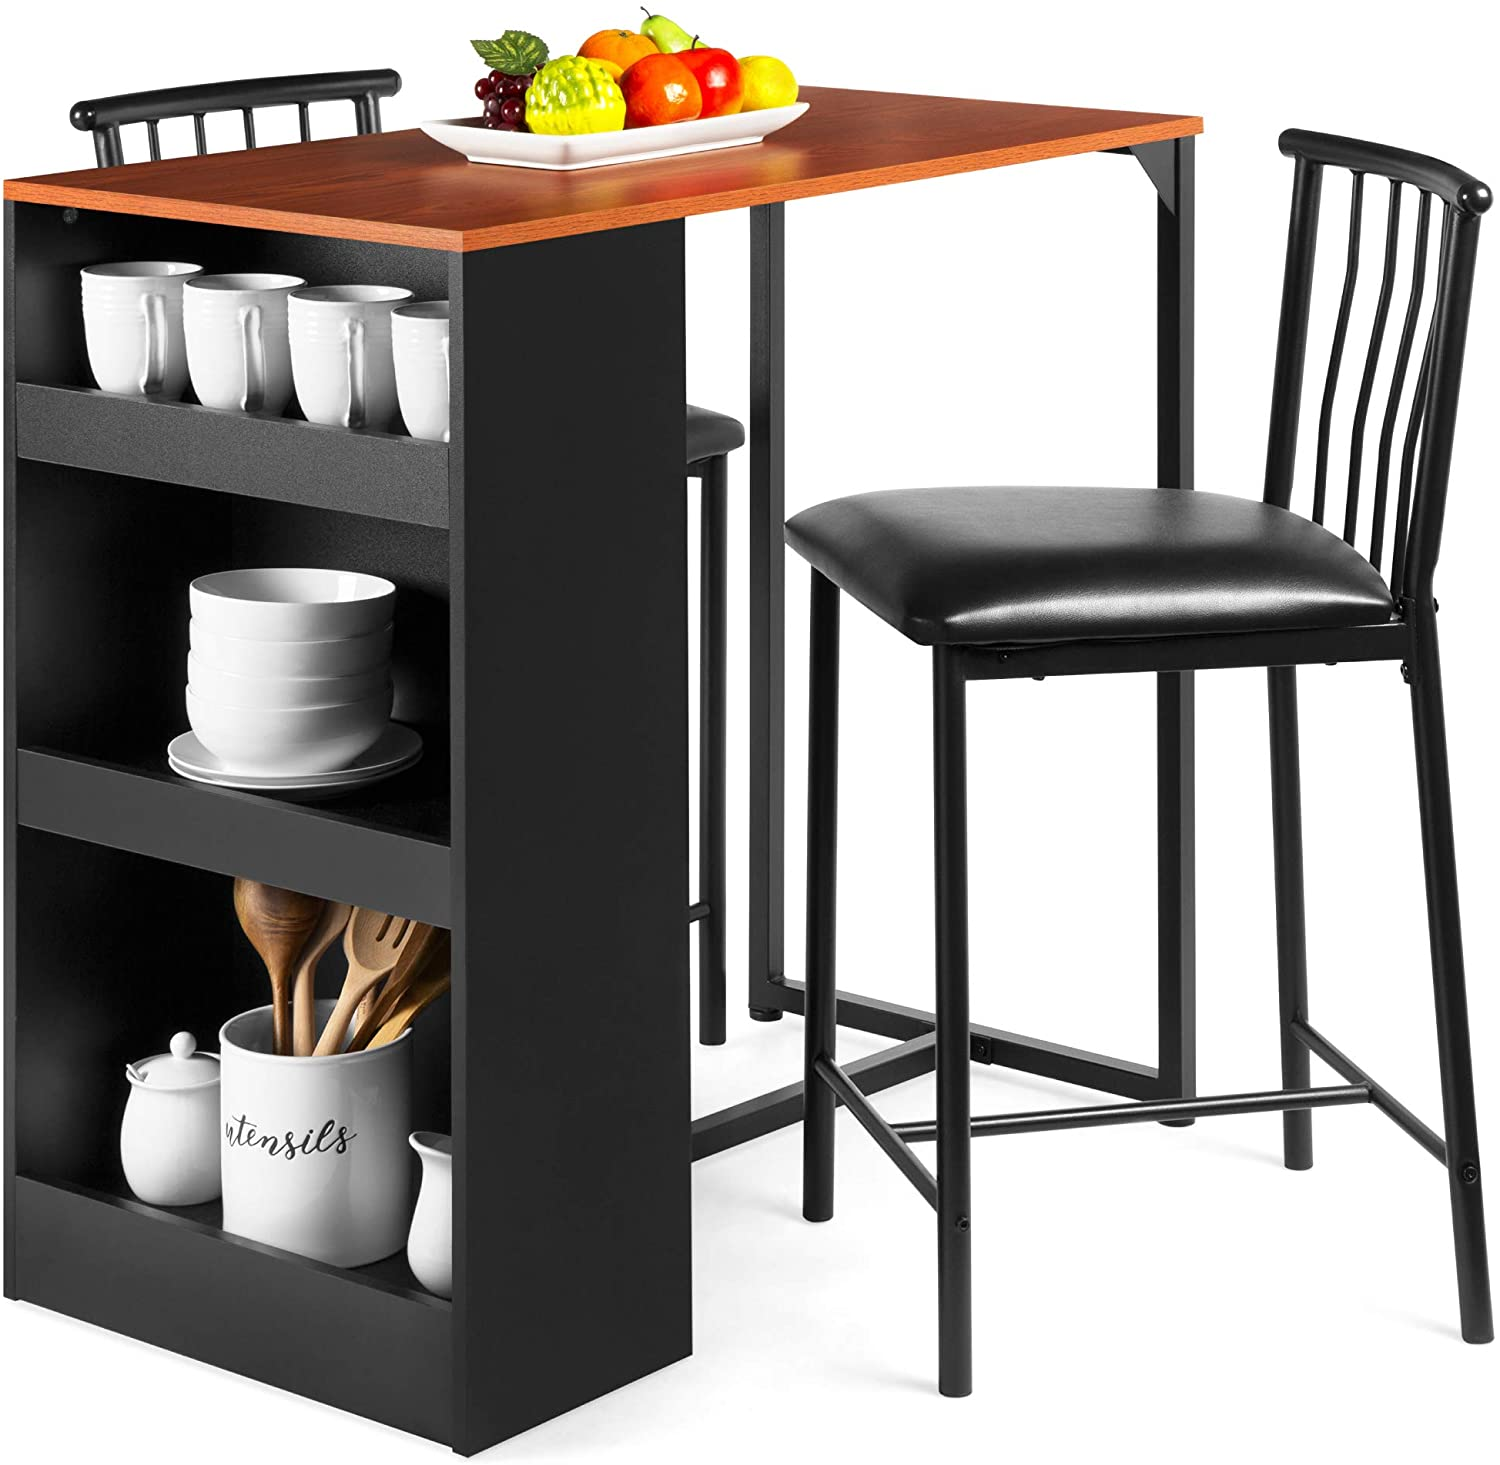 Best Choice Products 9 Piece 96in Wooden Counter Height Dining Table Set  for Kitchen, Dining Room w/Storage Shelves, Metal Frame, 9 Barstools   ...